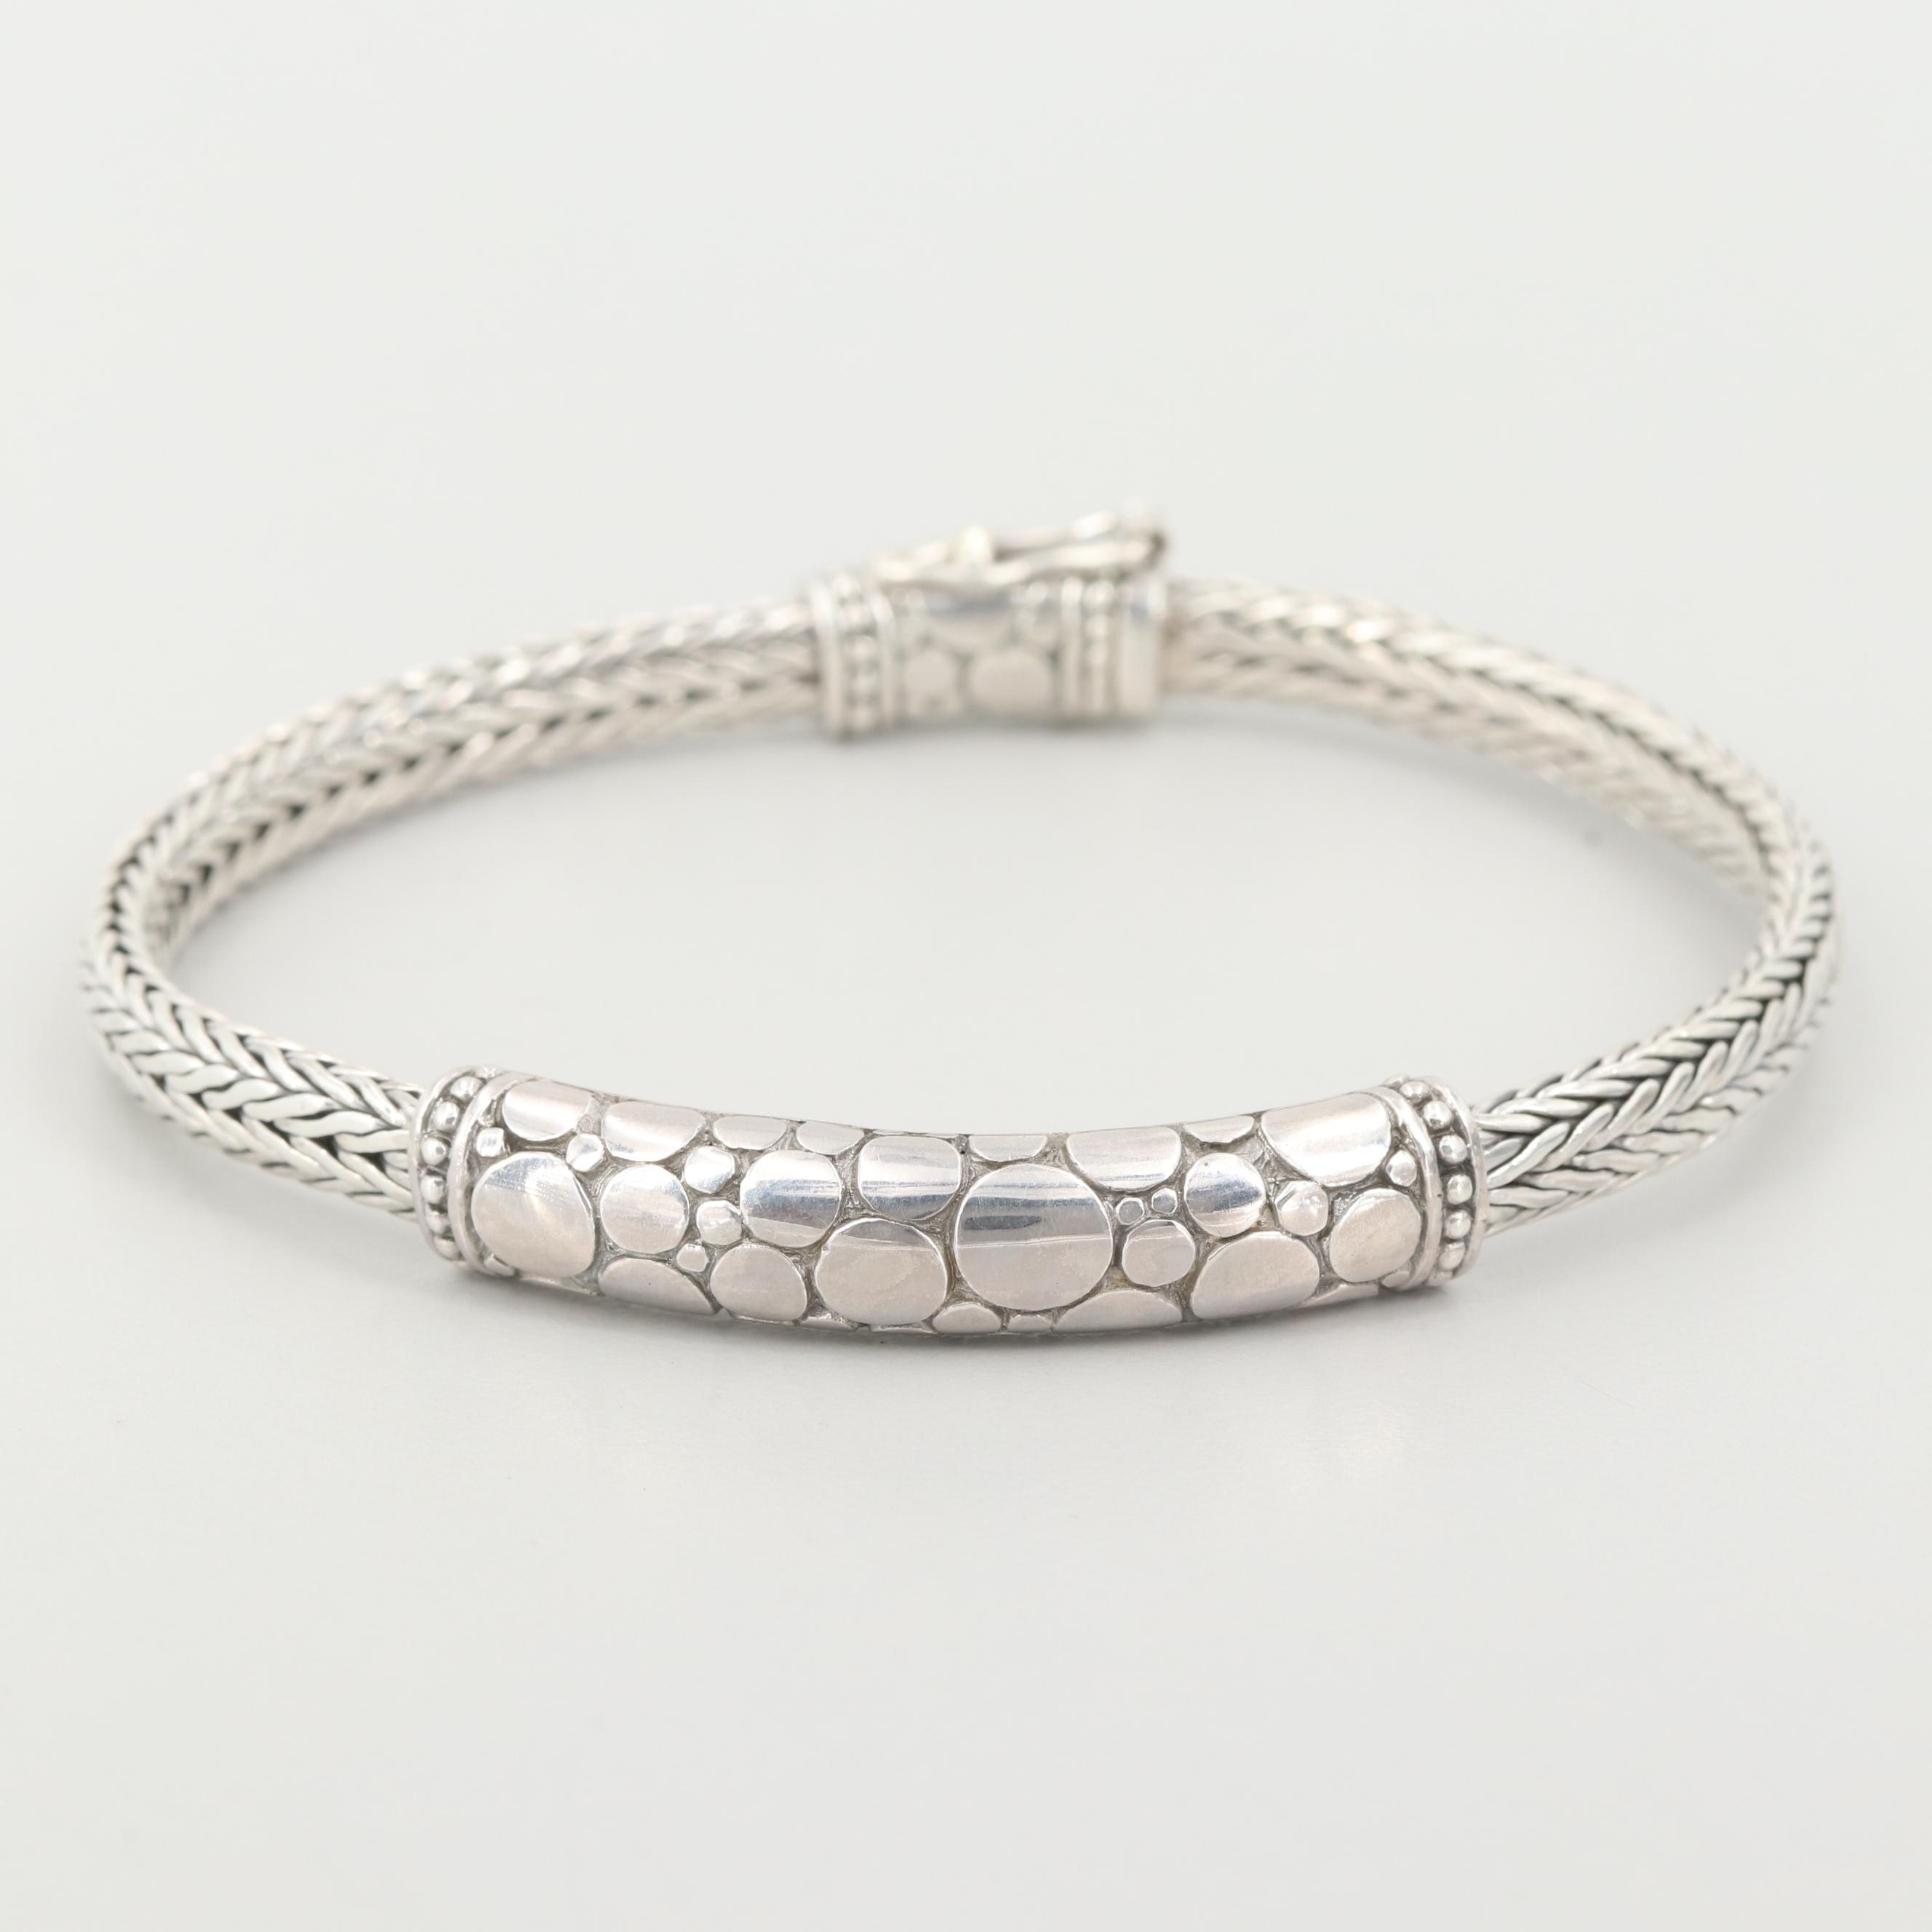 Sarda Sterling Silver Bracelet with Foxtail Chain and Concentric Motif